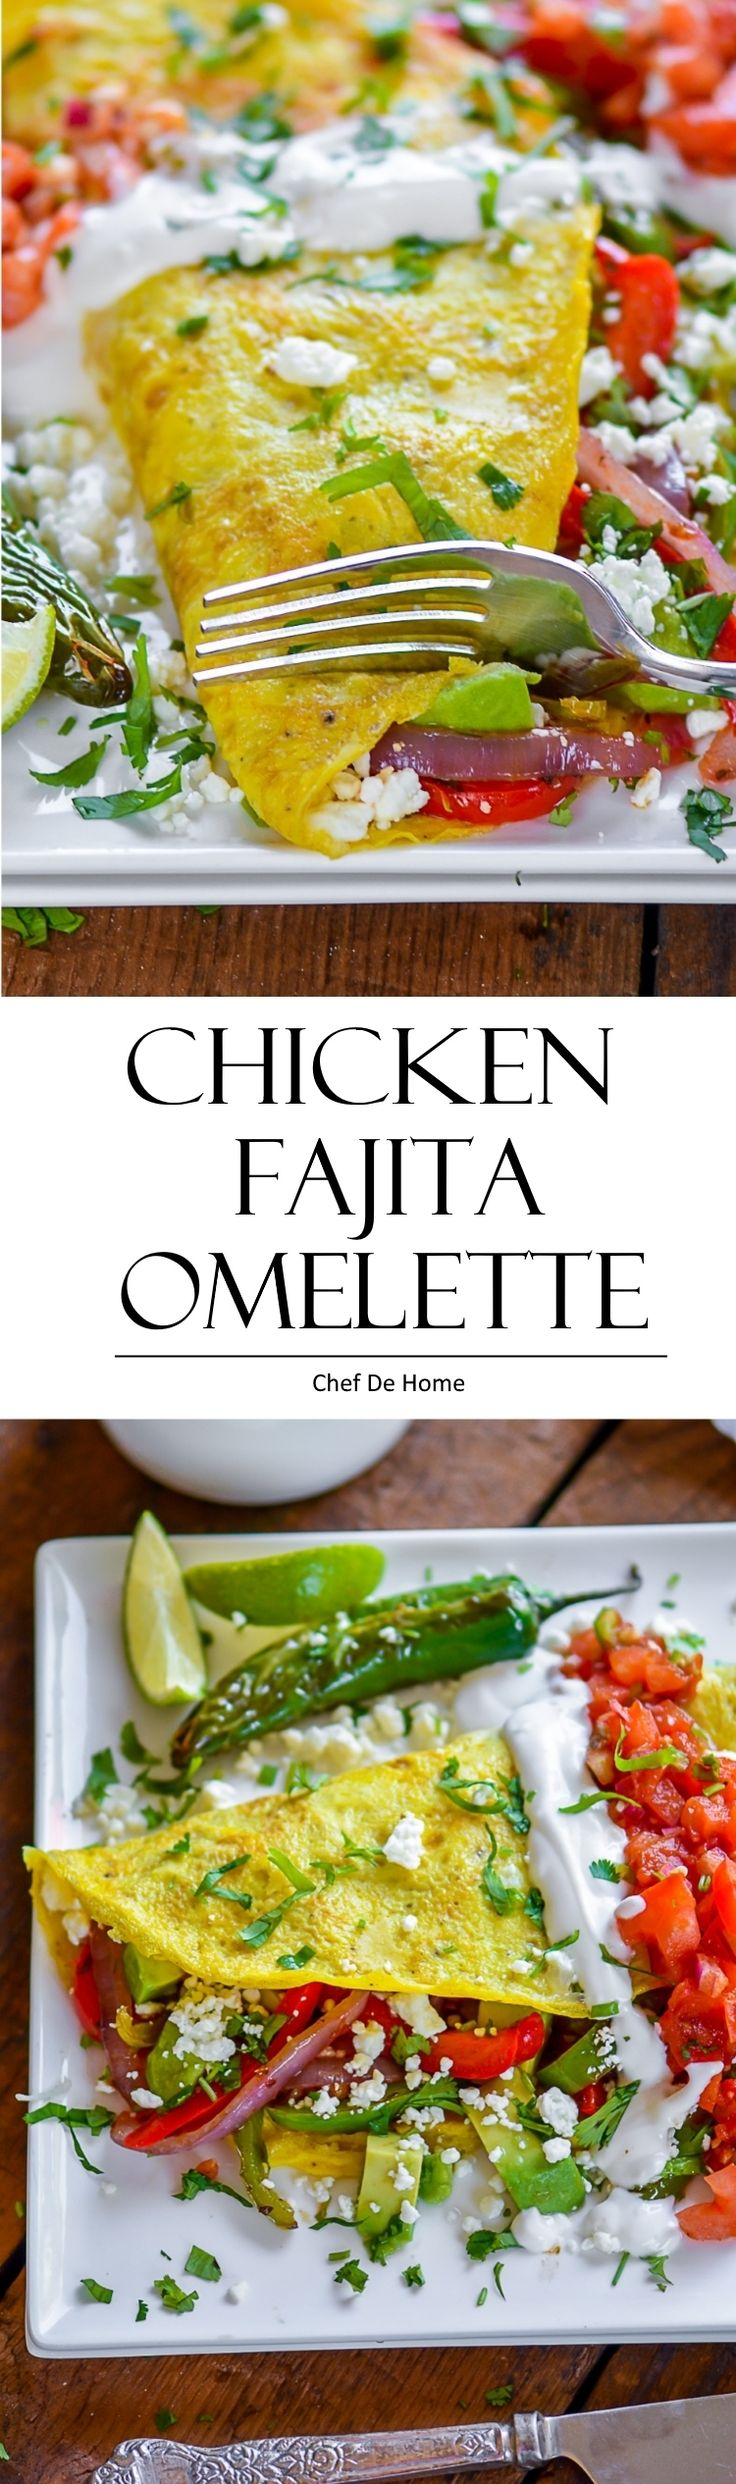 Chicken Fajita Omelette #glutenfree